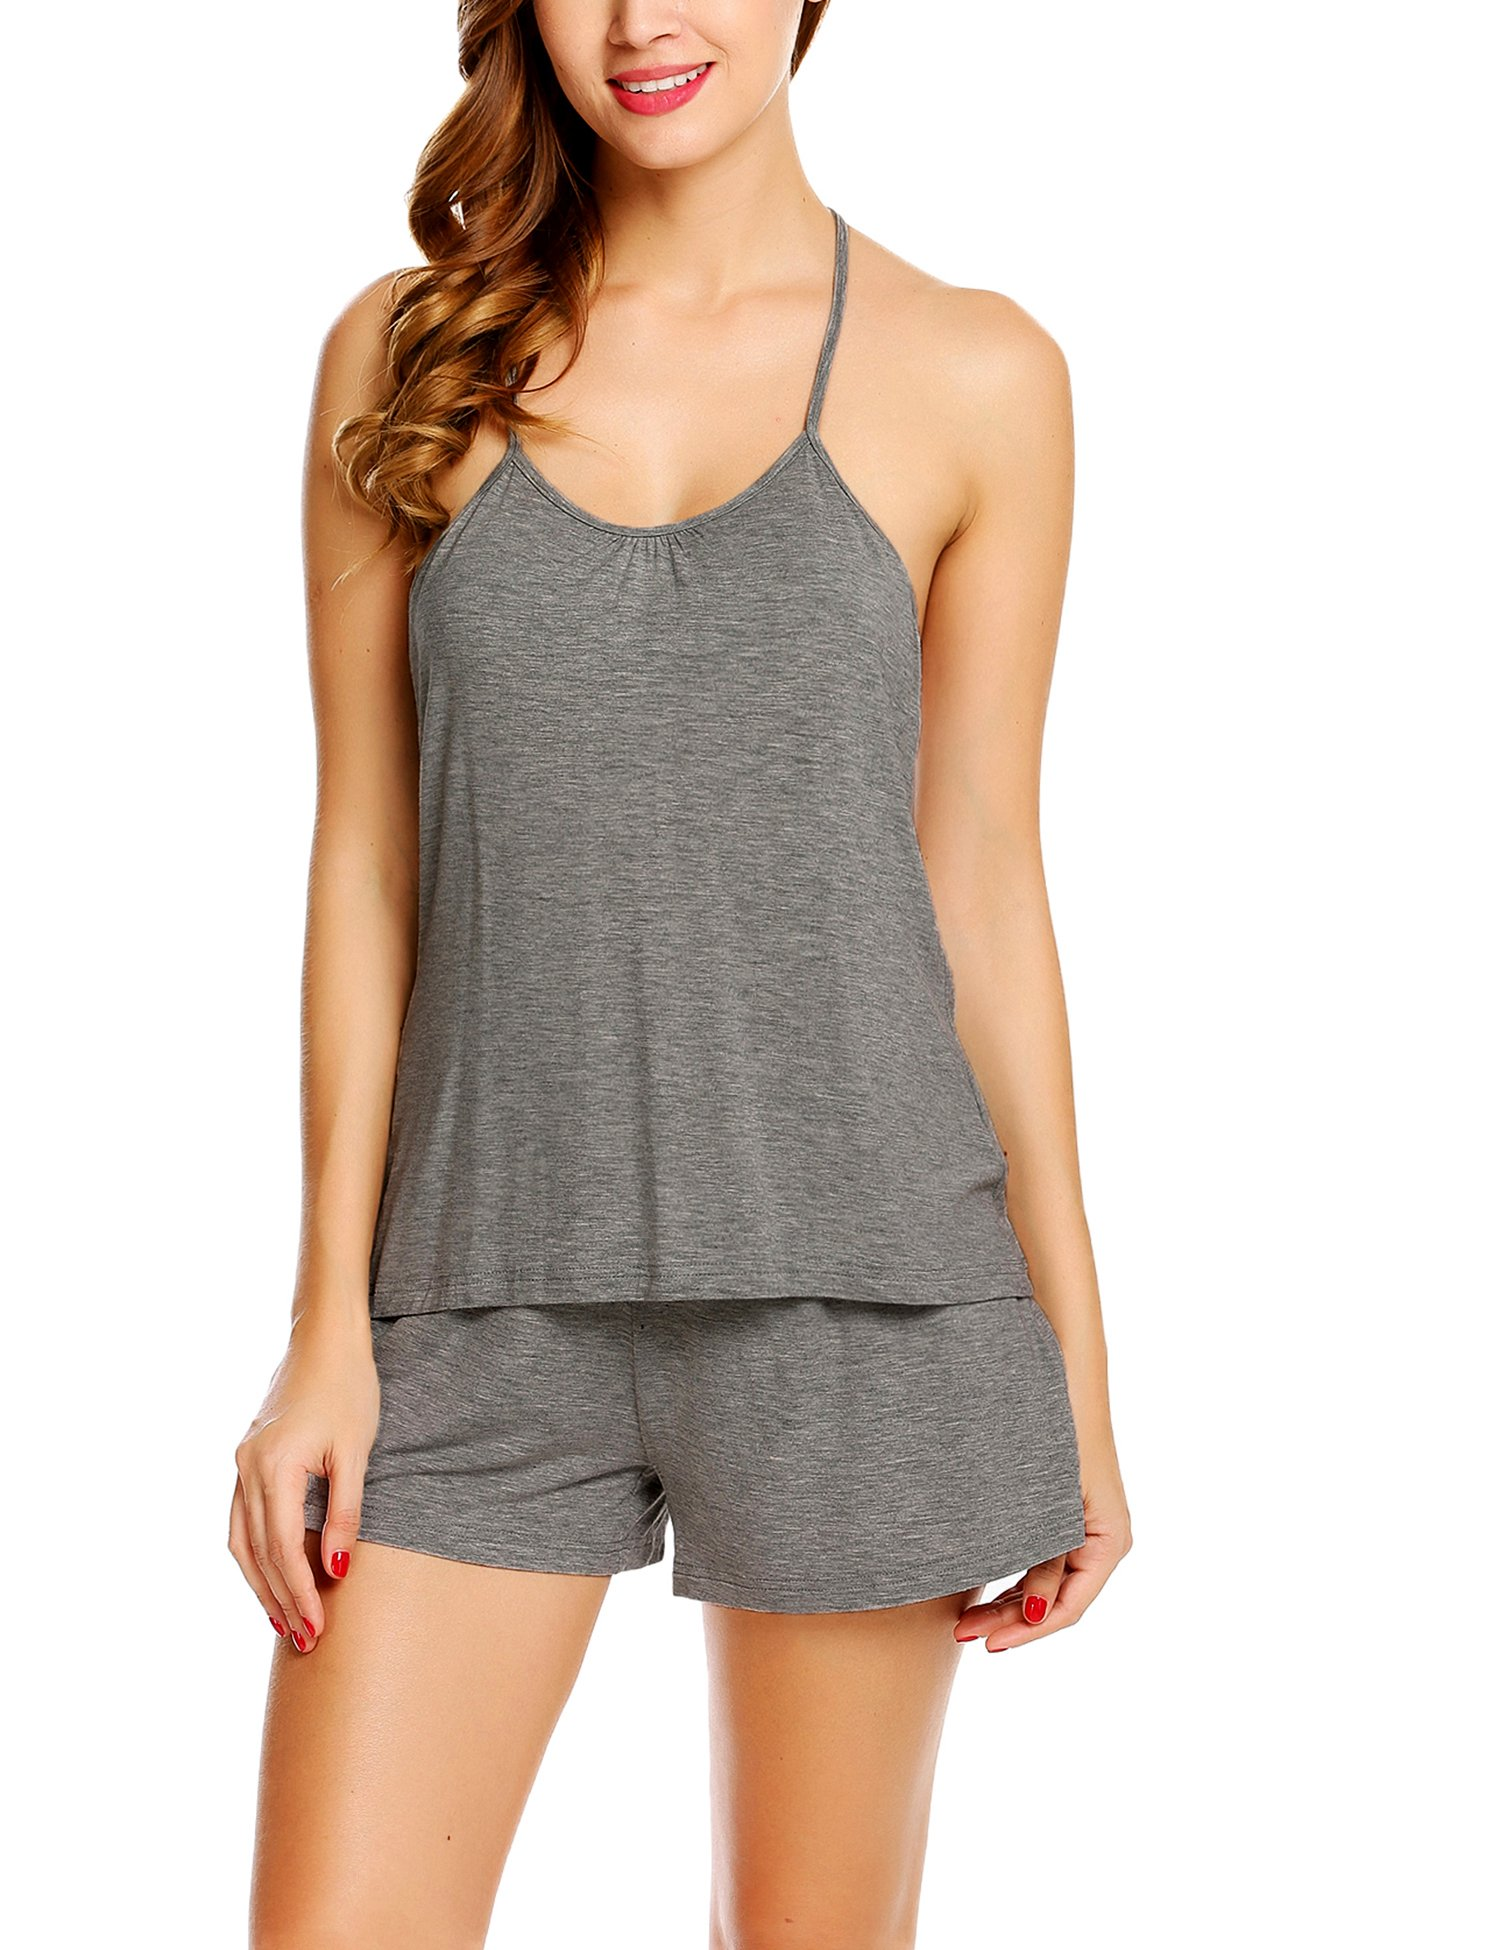 Avidlove Women's Halter Pajama Shorts Set Cotton Sexy Tank Pants Two Pieces Gray XX-Large